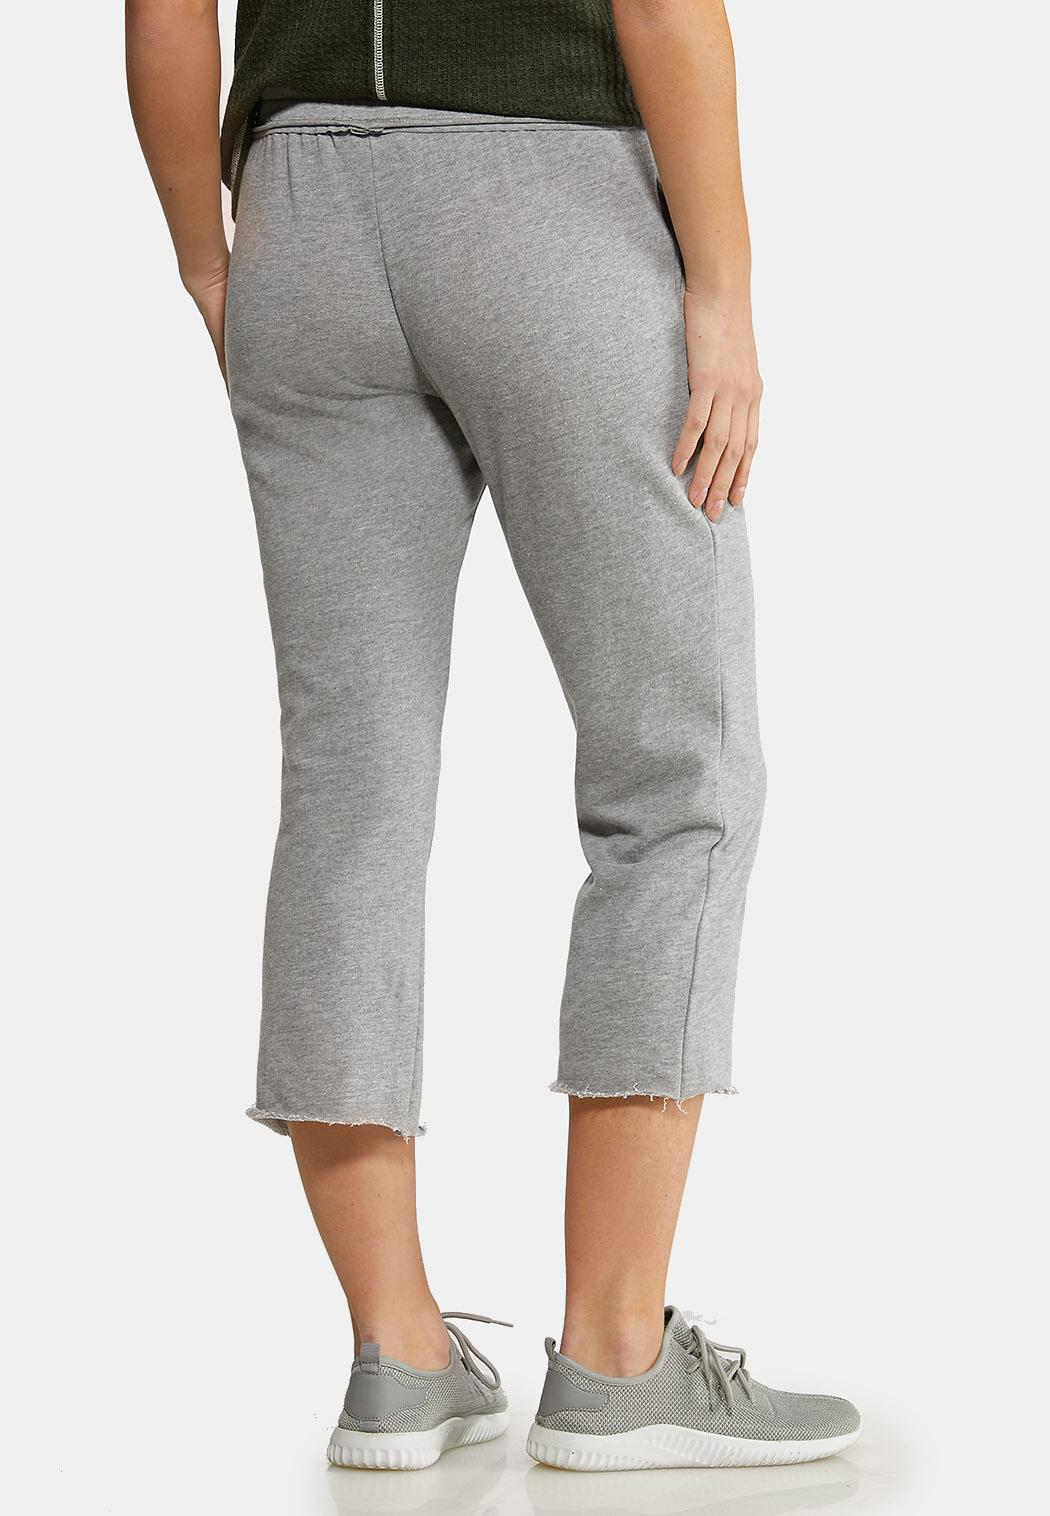 Gray Cropped Athleisure Pants (Item #44153103)